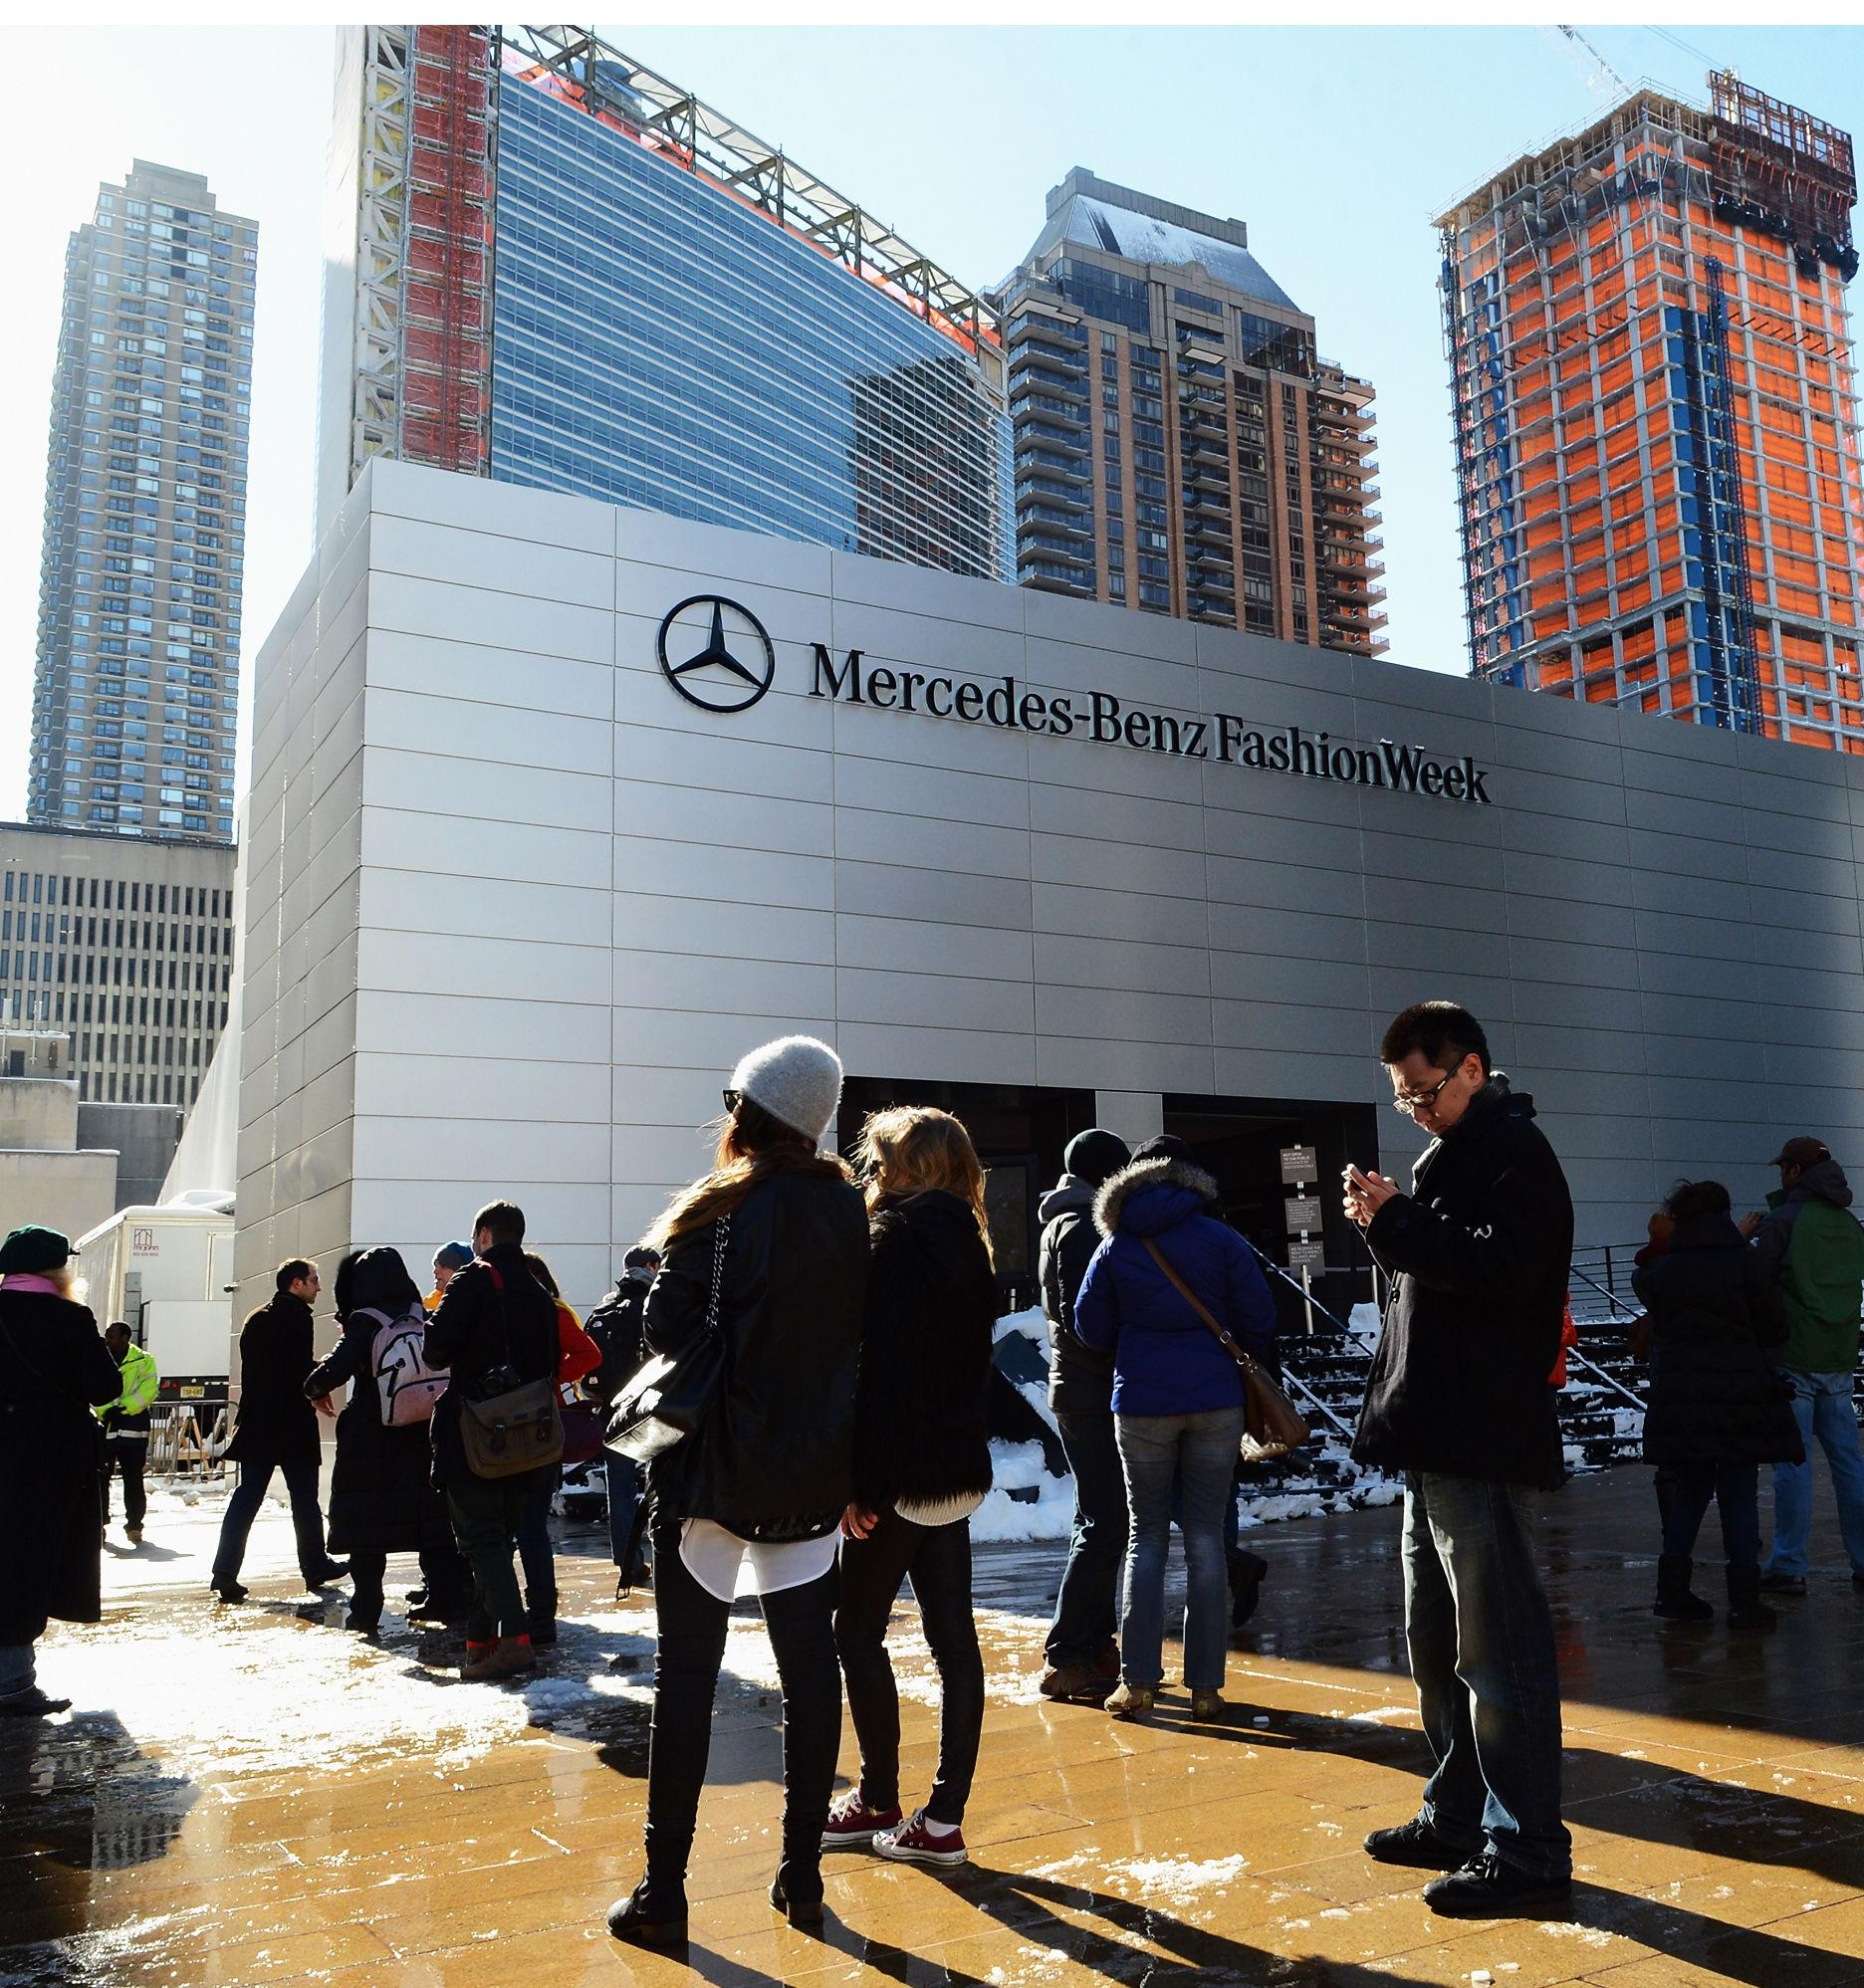 Breaking: New York Fashion Week will no longer be held at Lincoln Center http://t.co/6bT9Dz6oCx #NYFW http://t.co/aPVJ7CLKF9